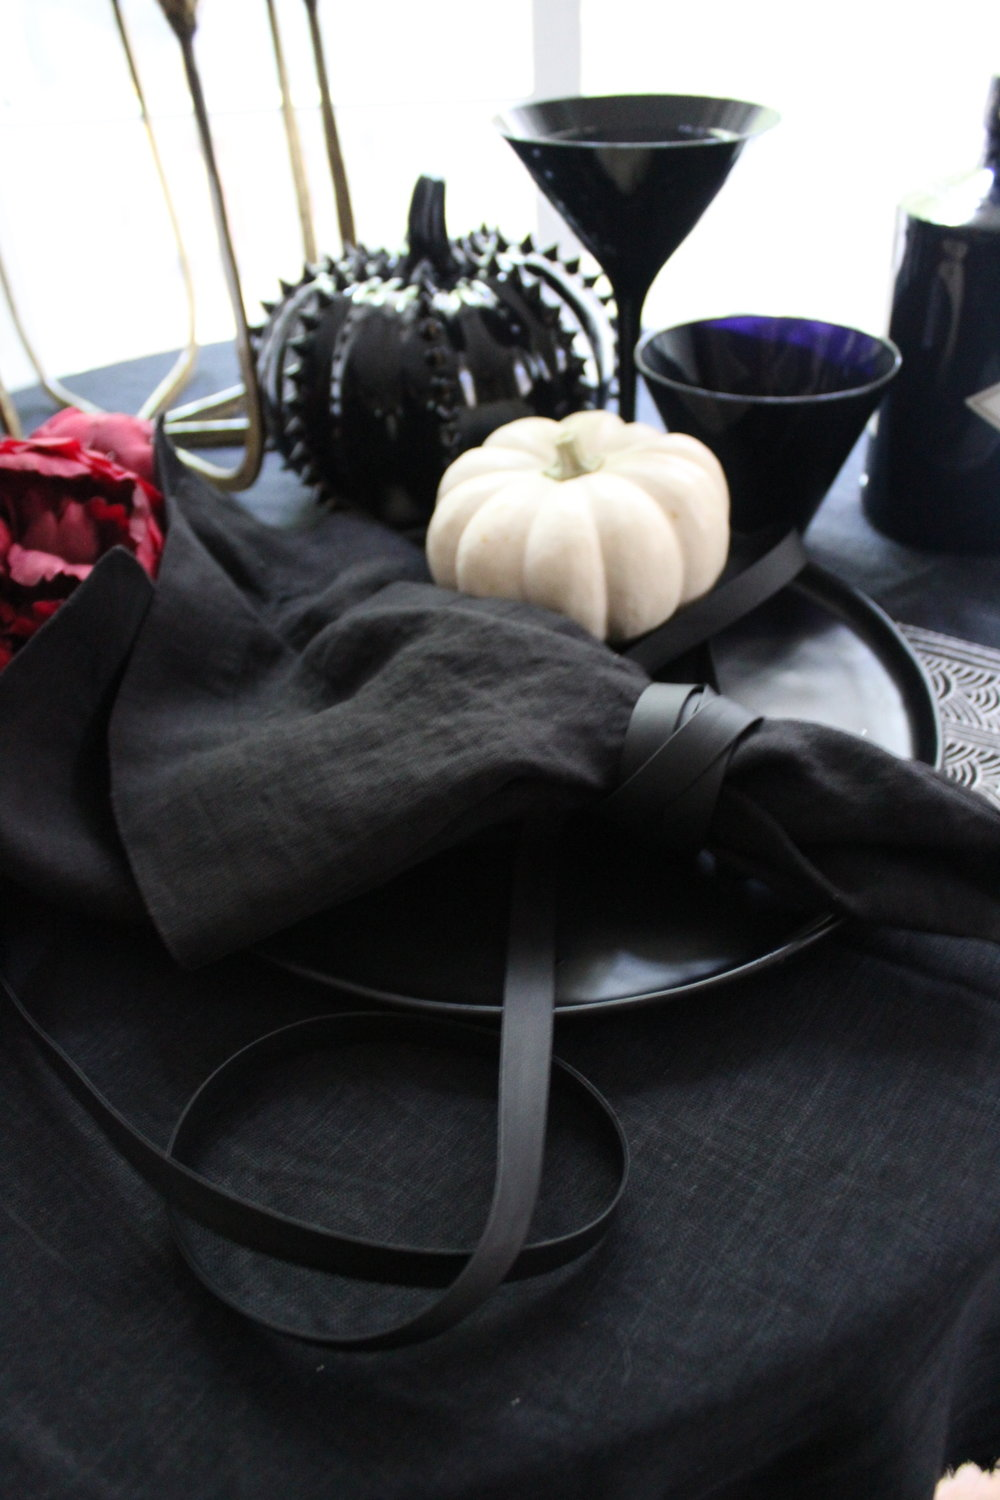 LEATHER...a few yards of faux leather ribbon from a local fabric store make excellent napkin rings. Leave a little excess to drape on the table for a moody effect.  LINEN...while you are at the fabric store, order a couple yards of black linen for a gauzy tablecloth. Save on ironing time and leave it bunching and the ends frayed. Splurge on linen napkins that you would use year round and save on the tablecloth that you will probably only use once a year.